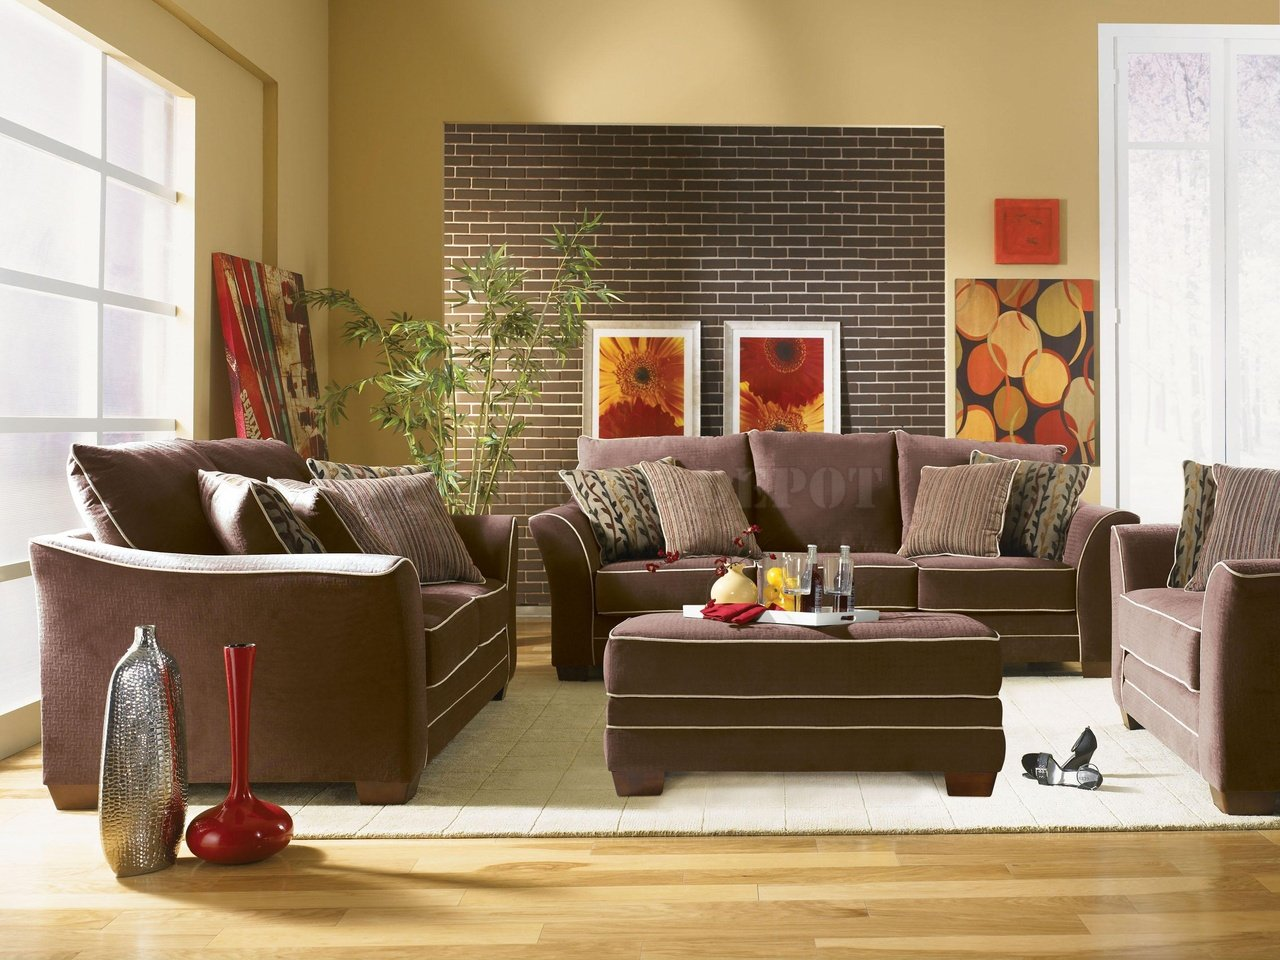 Interior design ideas interior designs home design ideas living room furniture sofas design Sofa for living room